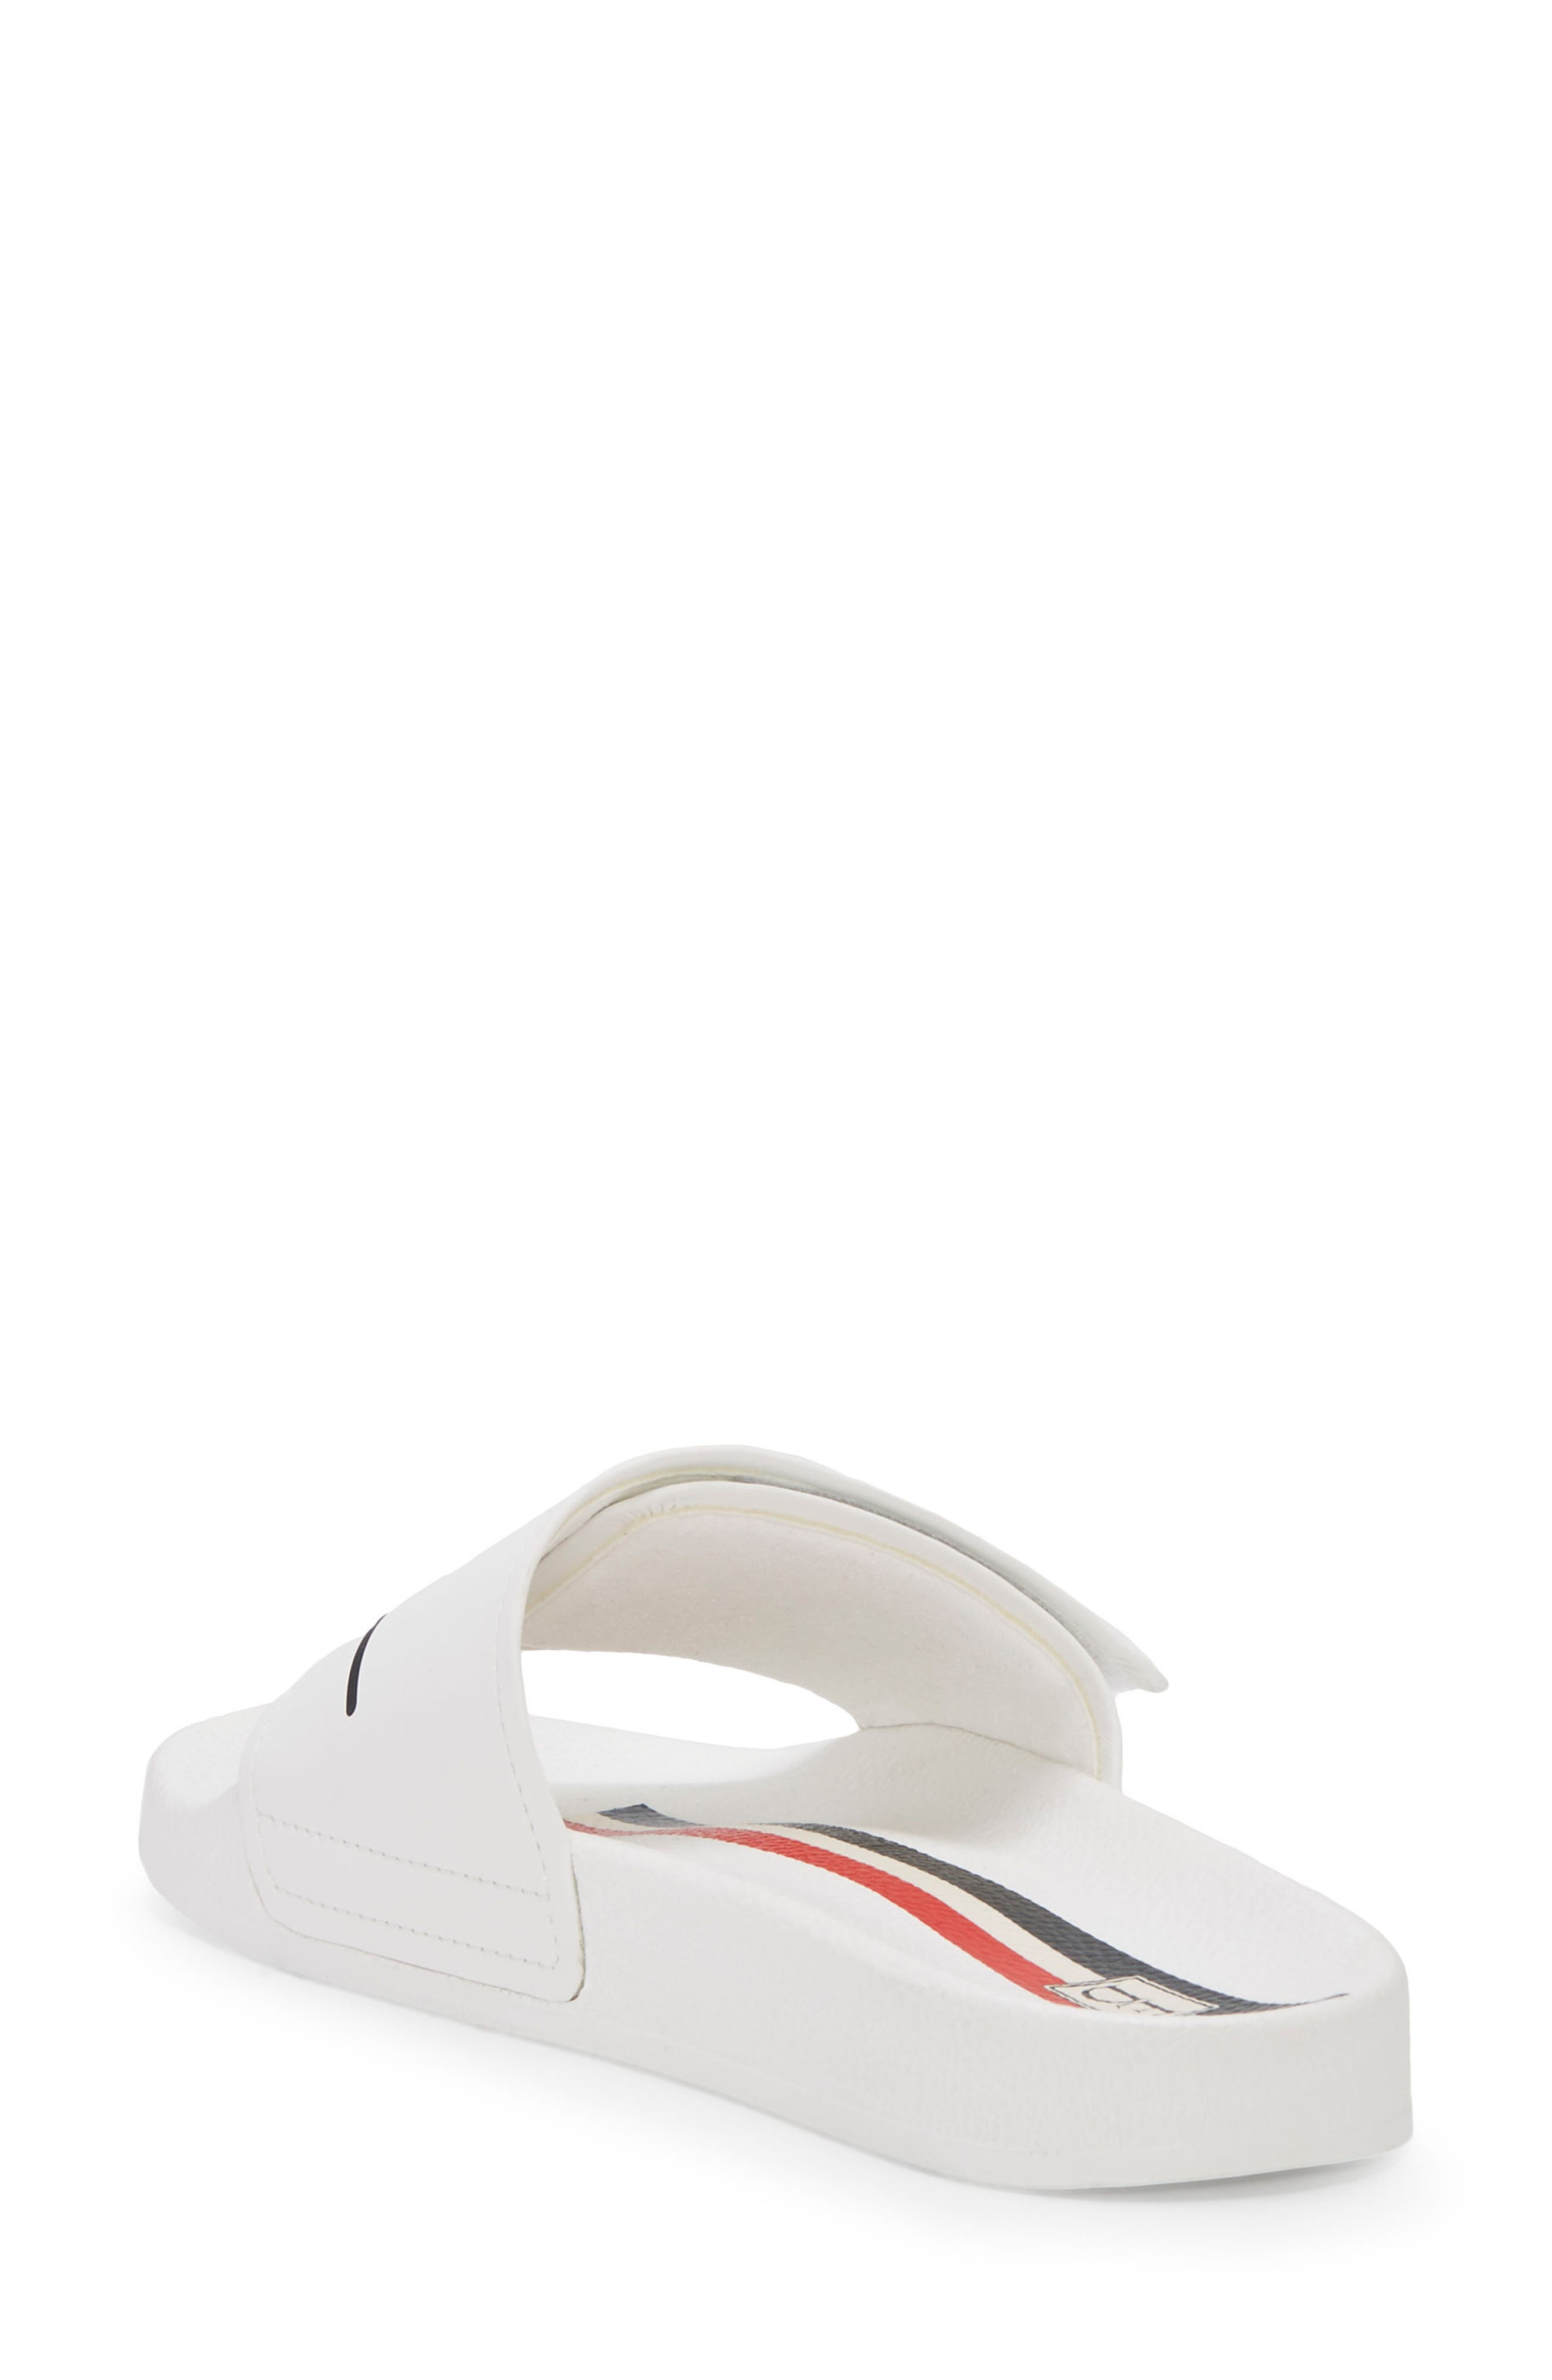 Paradia Slide Sandal,                             Alternate thumbnail 2, color,                             Pure White/ Lagoon